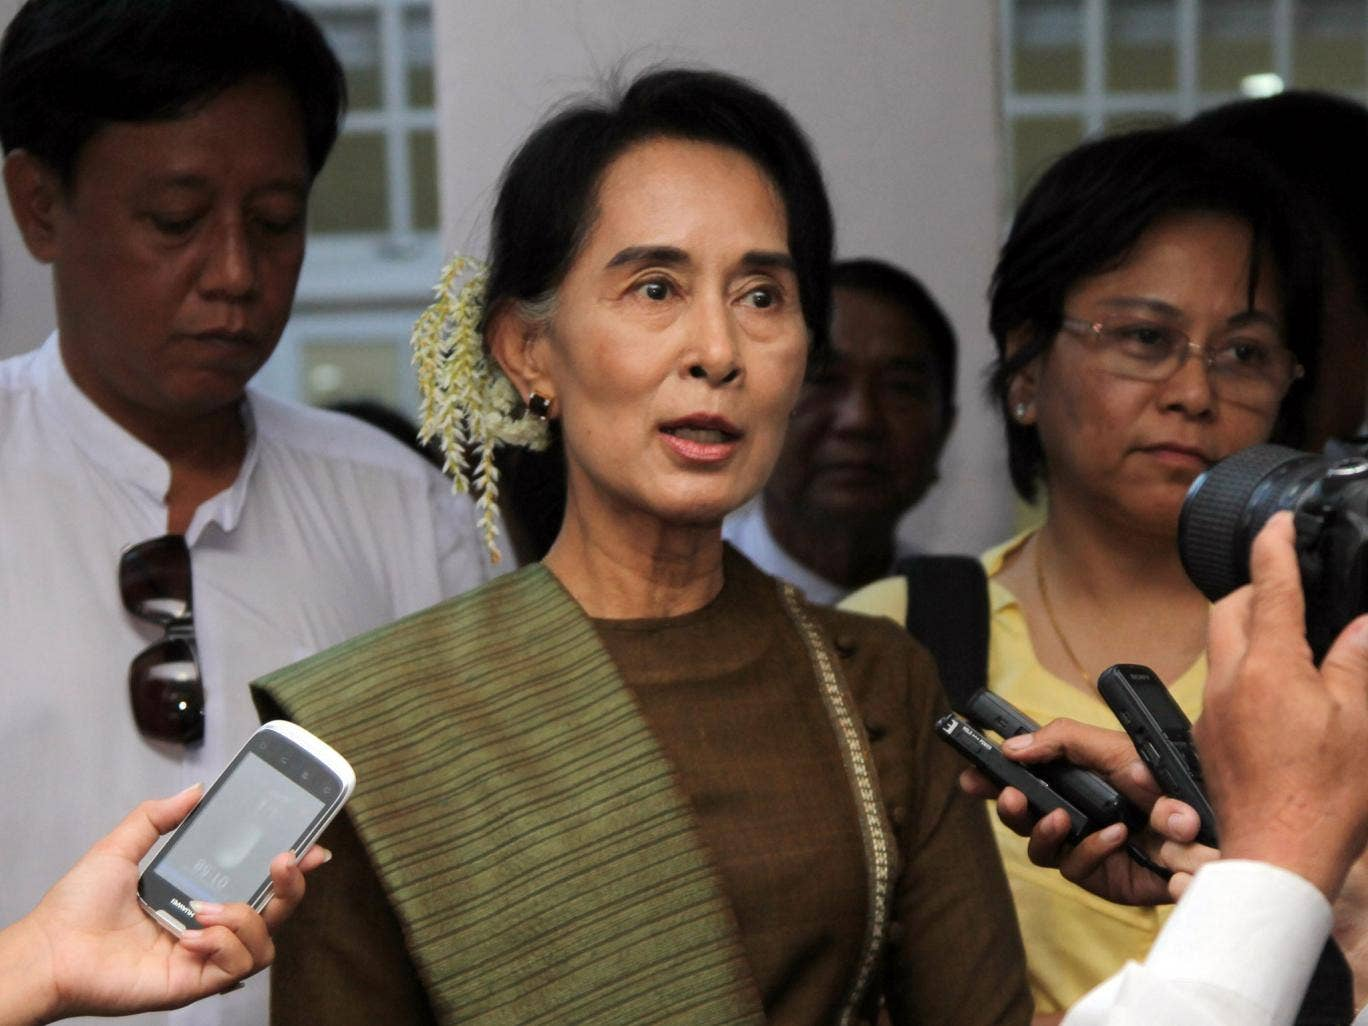 Aung San Suu Kyi is agitating for constitutional change